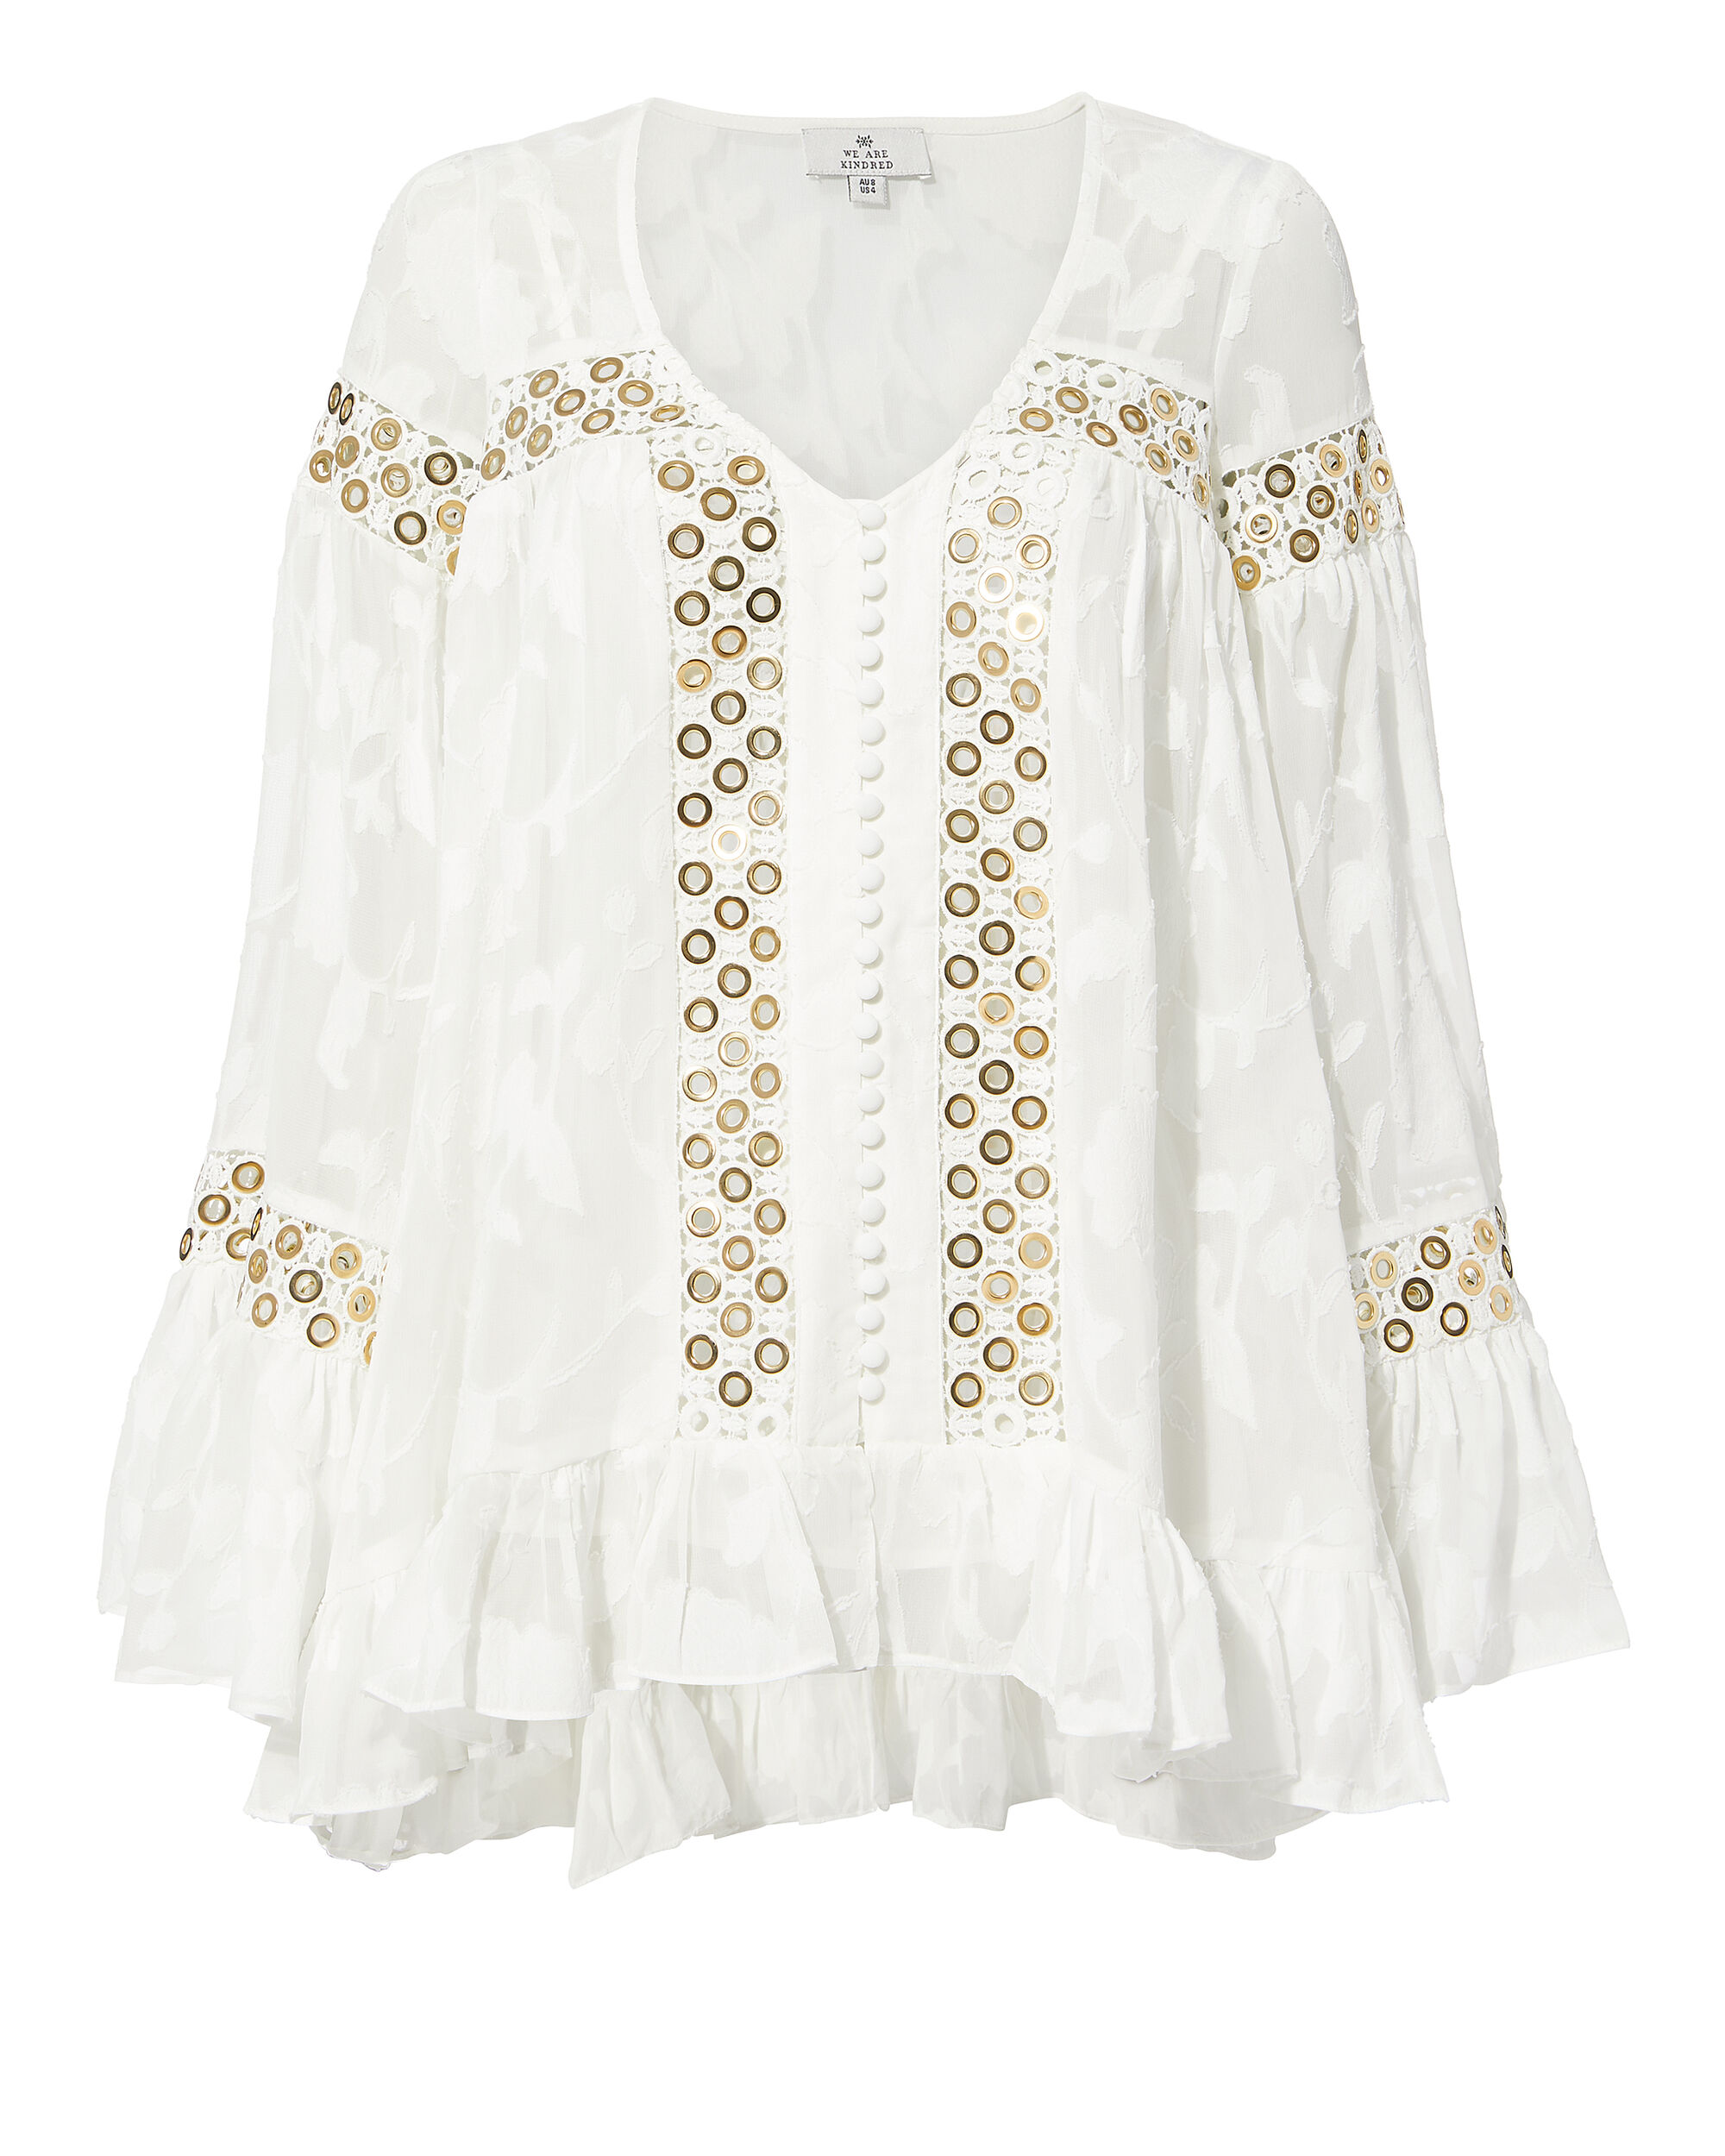 WE ARE KINDRED Stephanie Gold Grommet Blouse